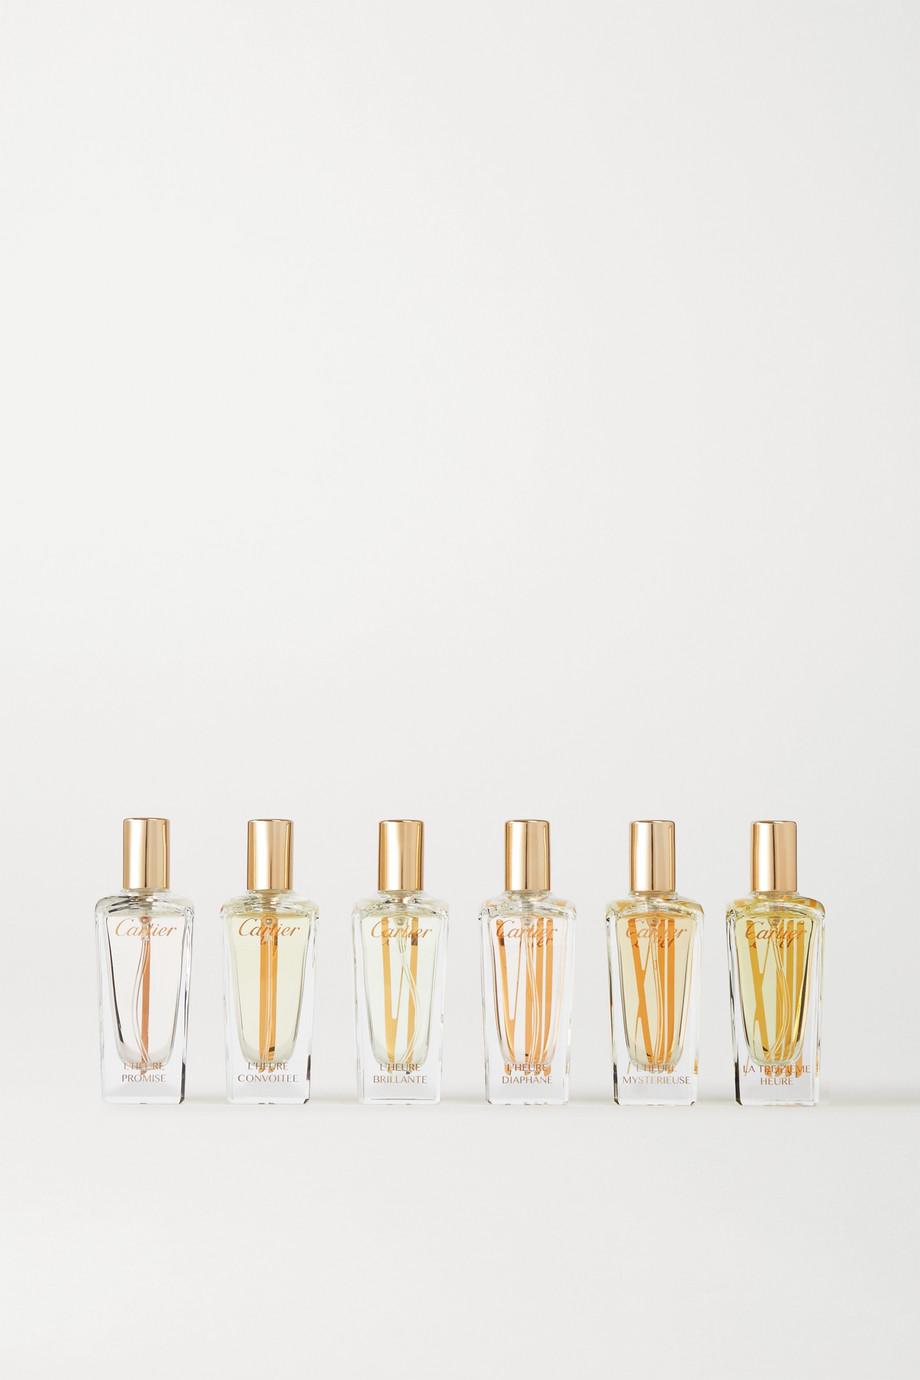 Cartier Perfumes Les Collections de Parfum, 6 x 15ml